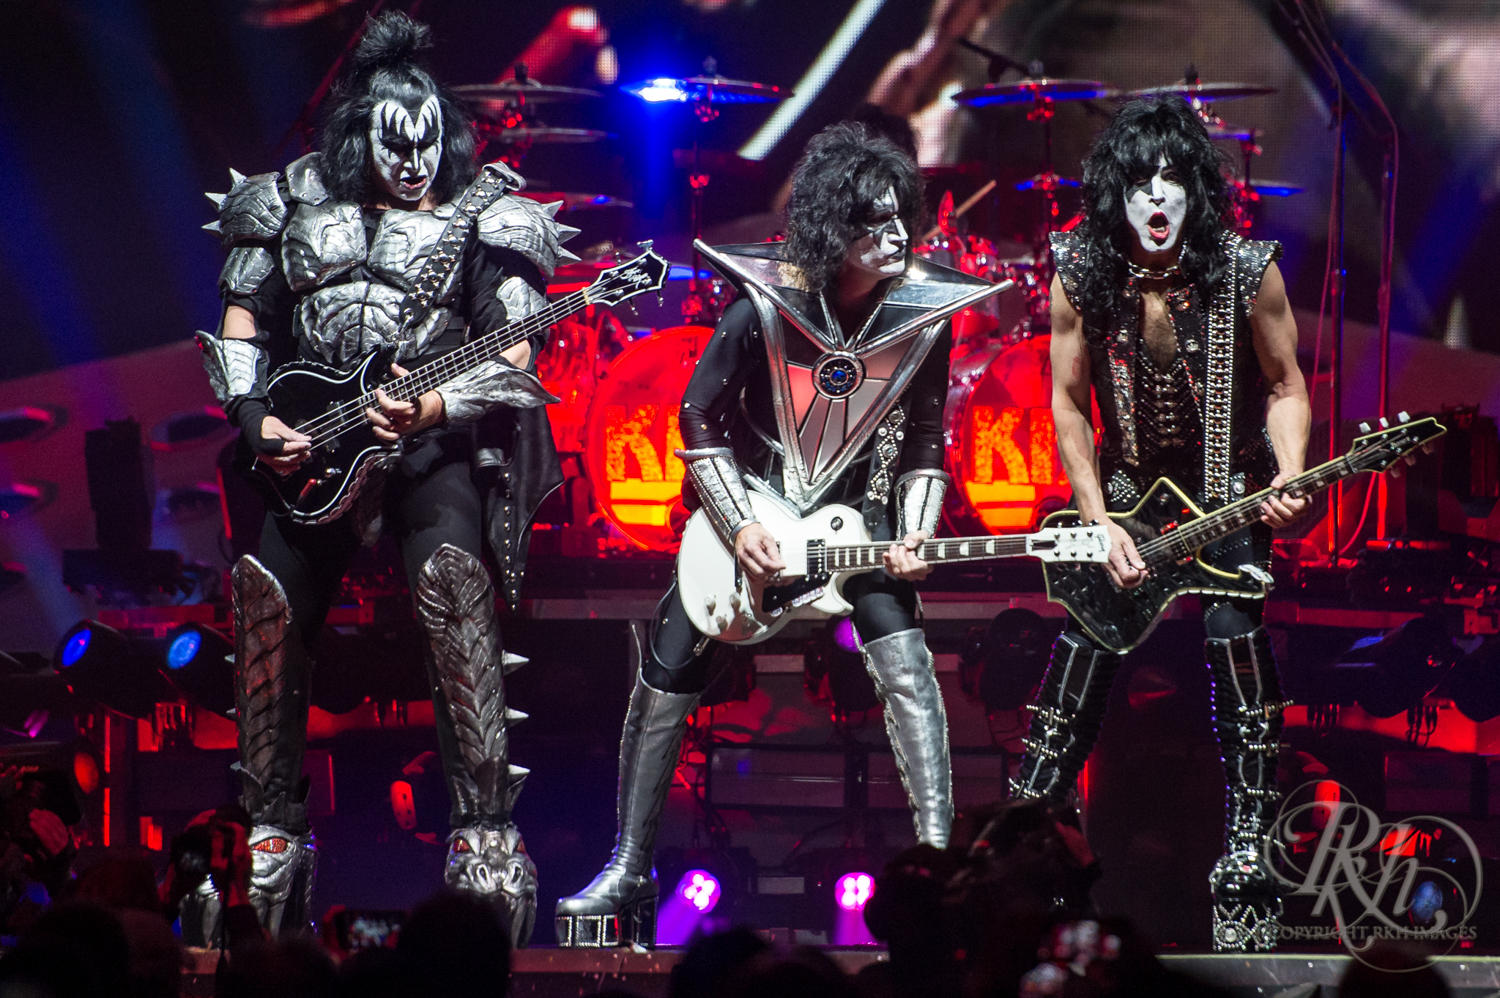 Kiss - End of the Road Tour - Target Center - Minneapolis - Concert Photography - RKH Images  (7 of 12).jpg